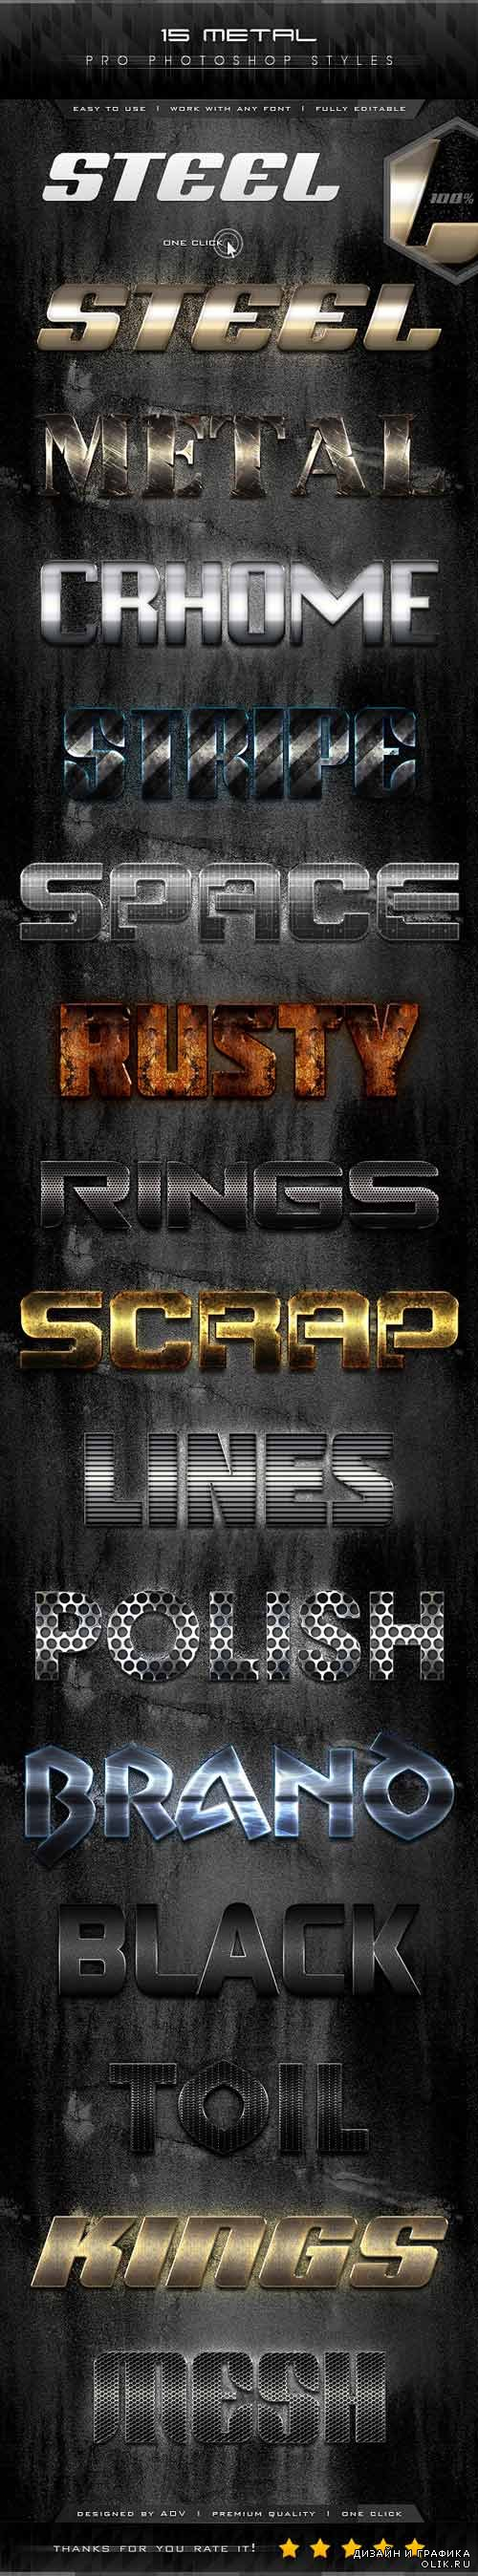 Graphicriver - 15 Metal Pro Styles